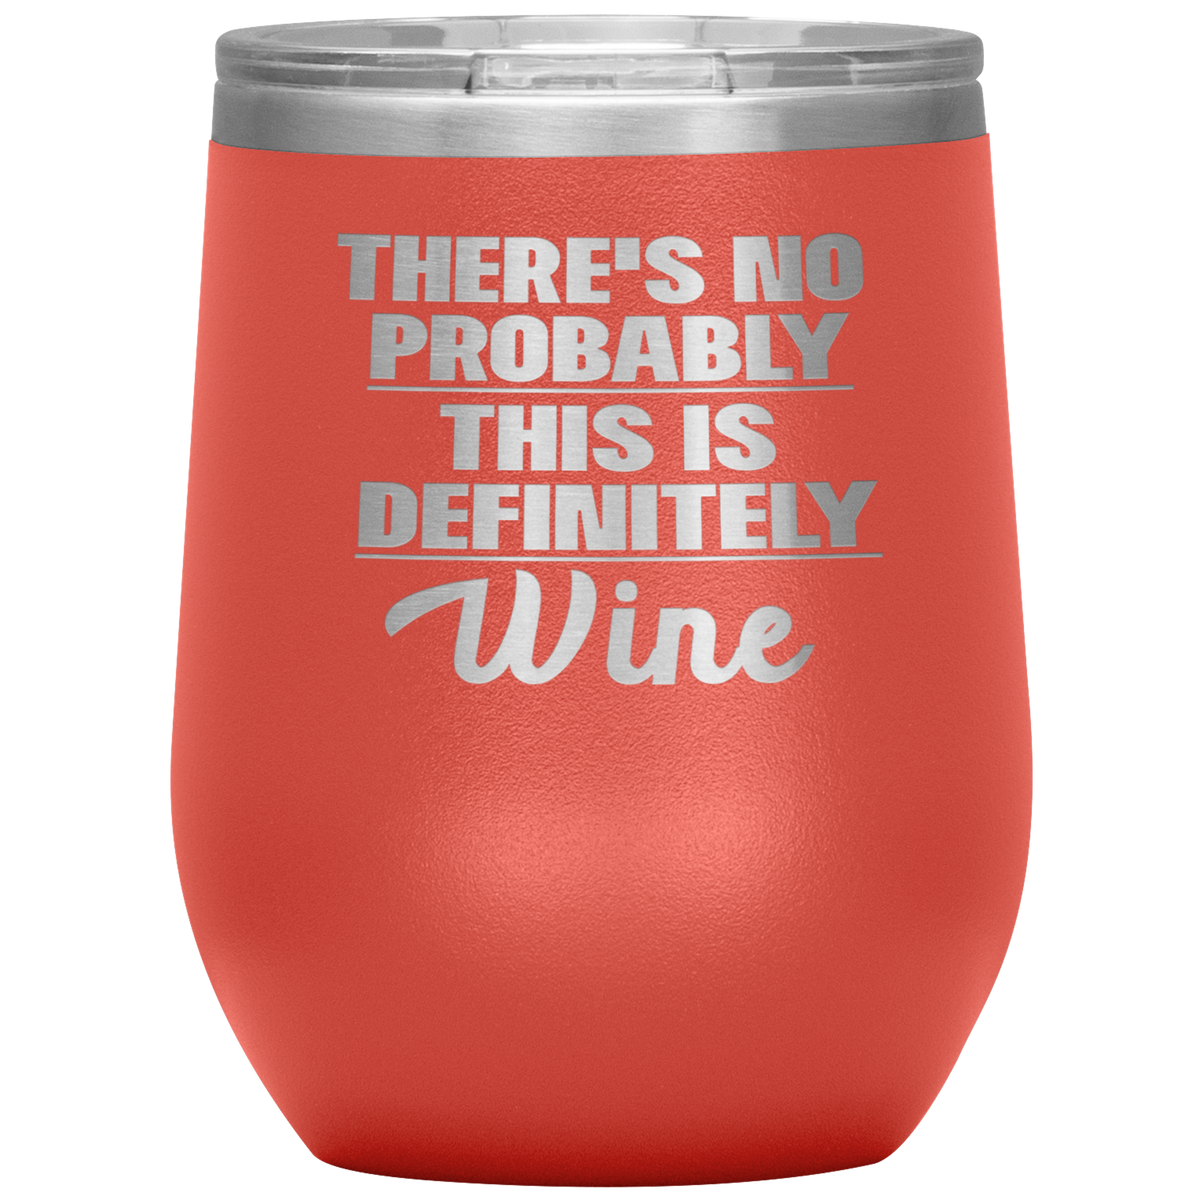 Probably Wine Funny Tumbler This is Definitely WIne